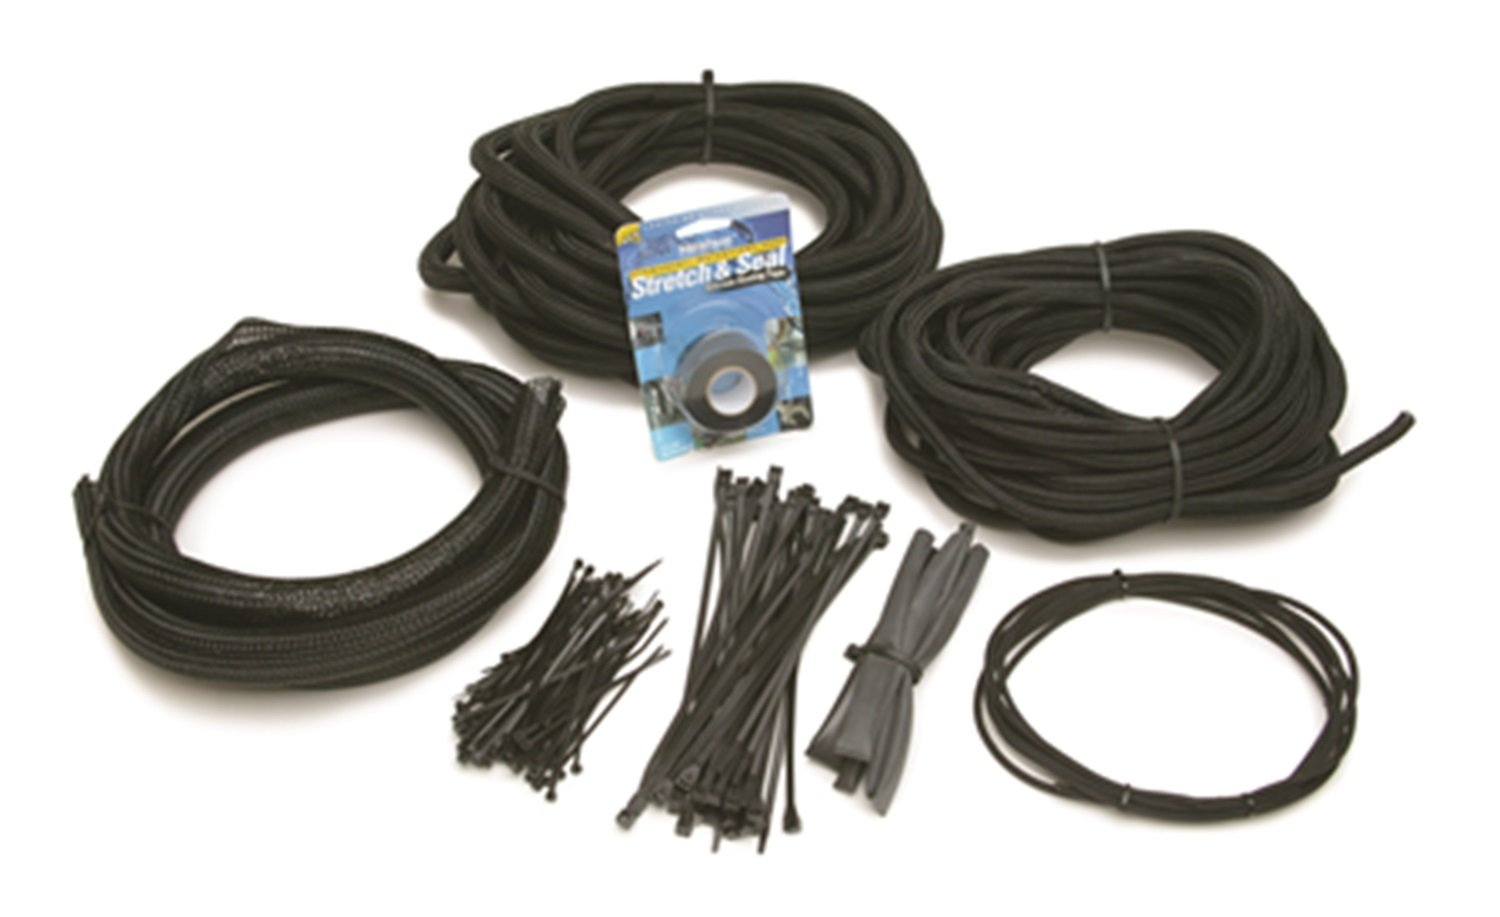 61KfhP ZlhL._SL1500_ amazon com painless wiring 70920 power braid chassis kit automotive painless wiring harness rebate at panicattacktreatment.co